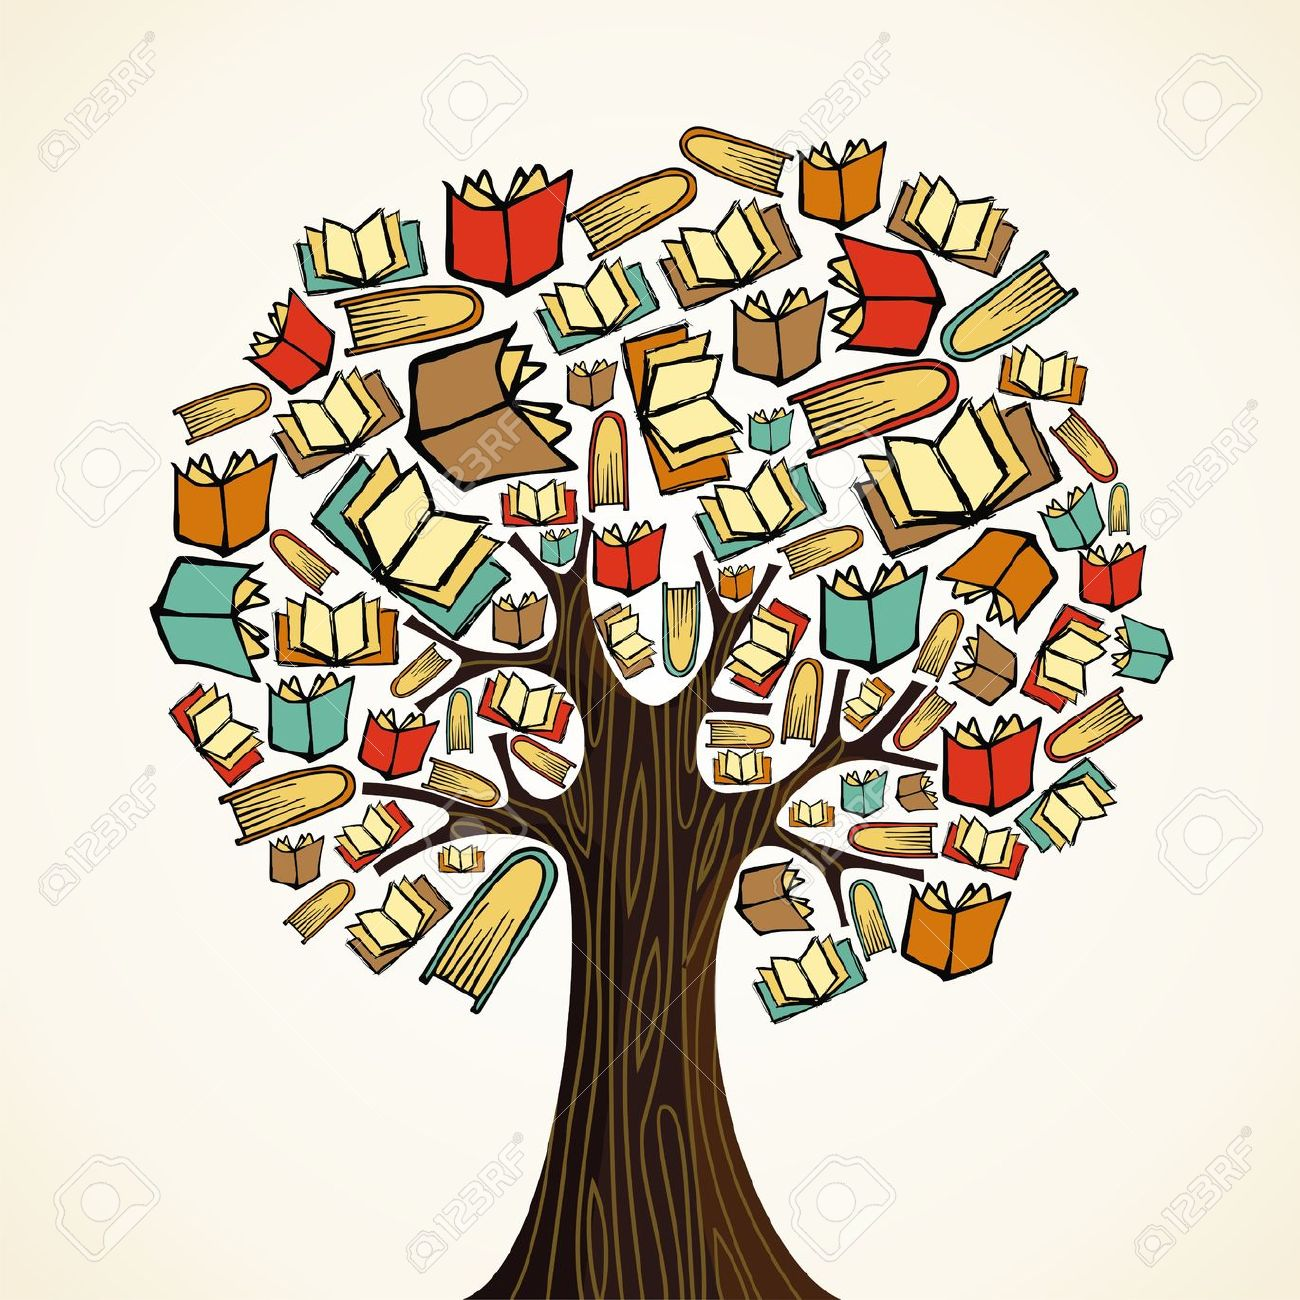 Books clipart knowledge. Tree of